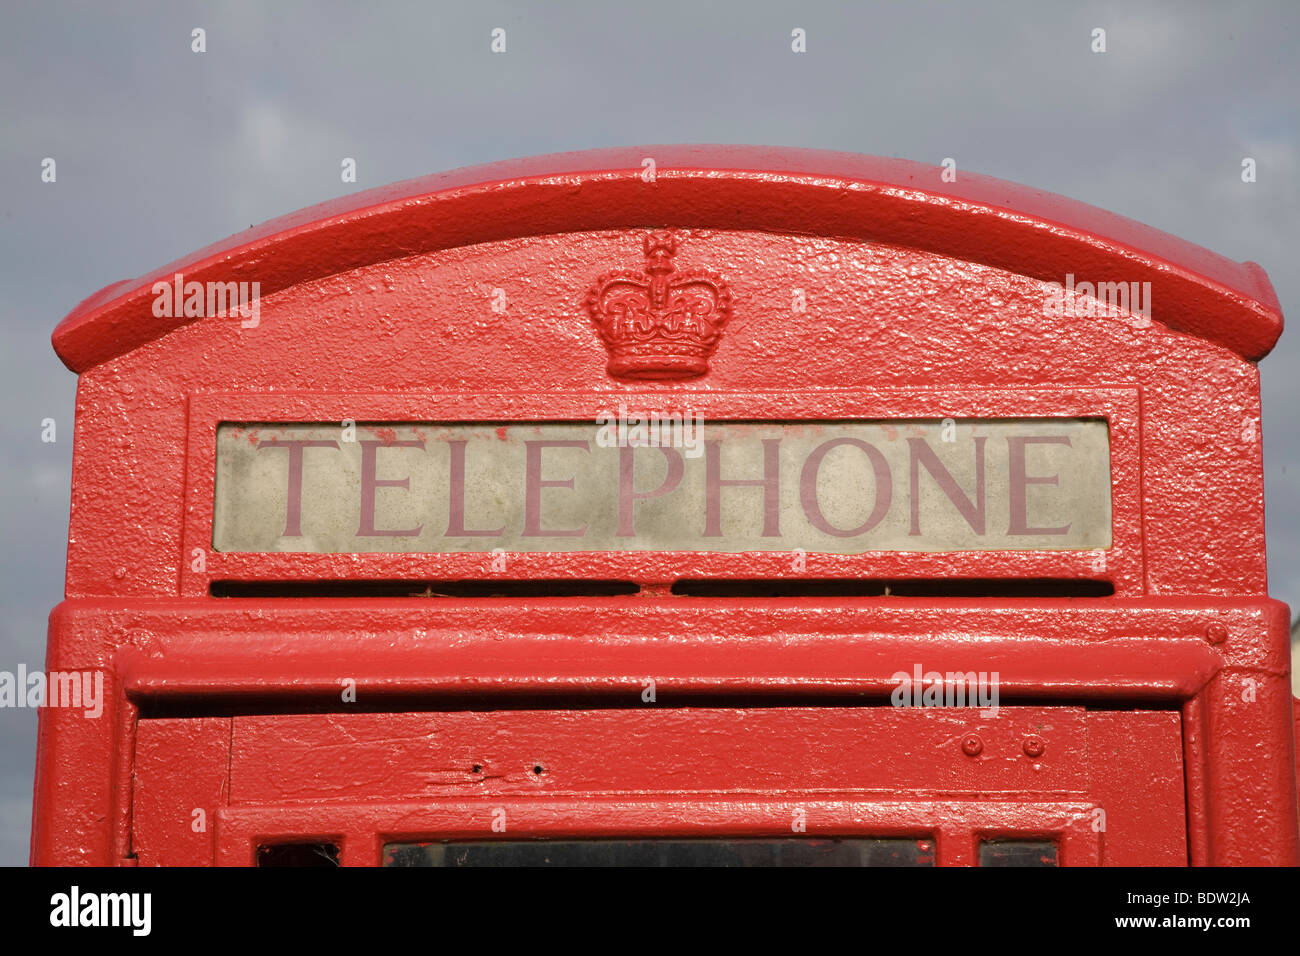 rote traditionelle telefonzelle, red phone box, orkney islands, scotland - Stock Image